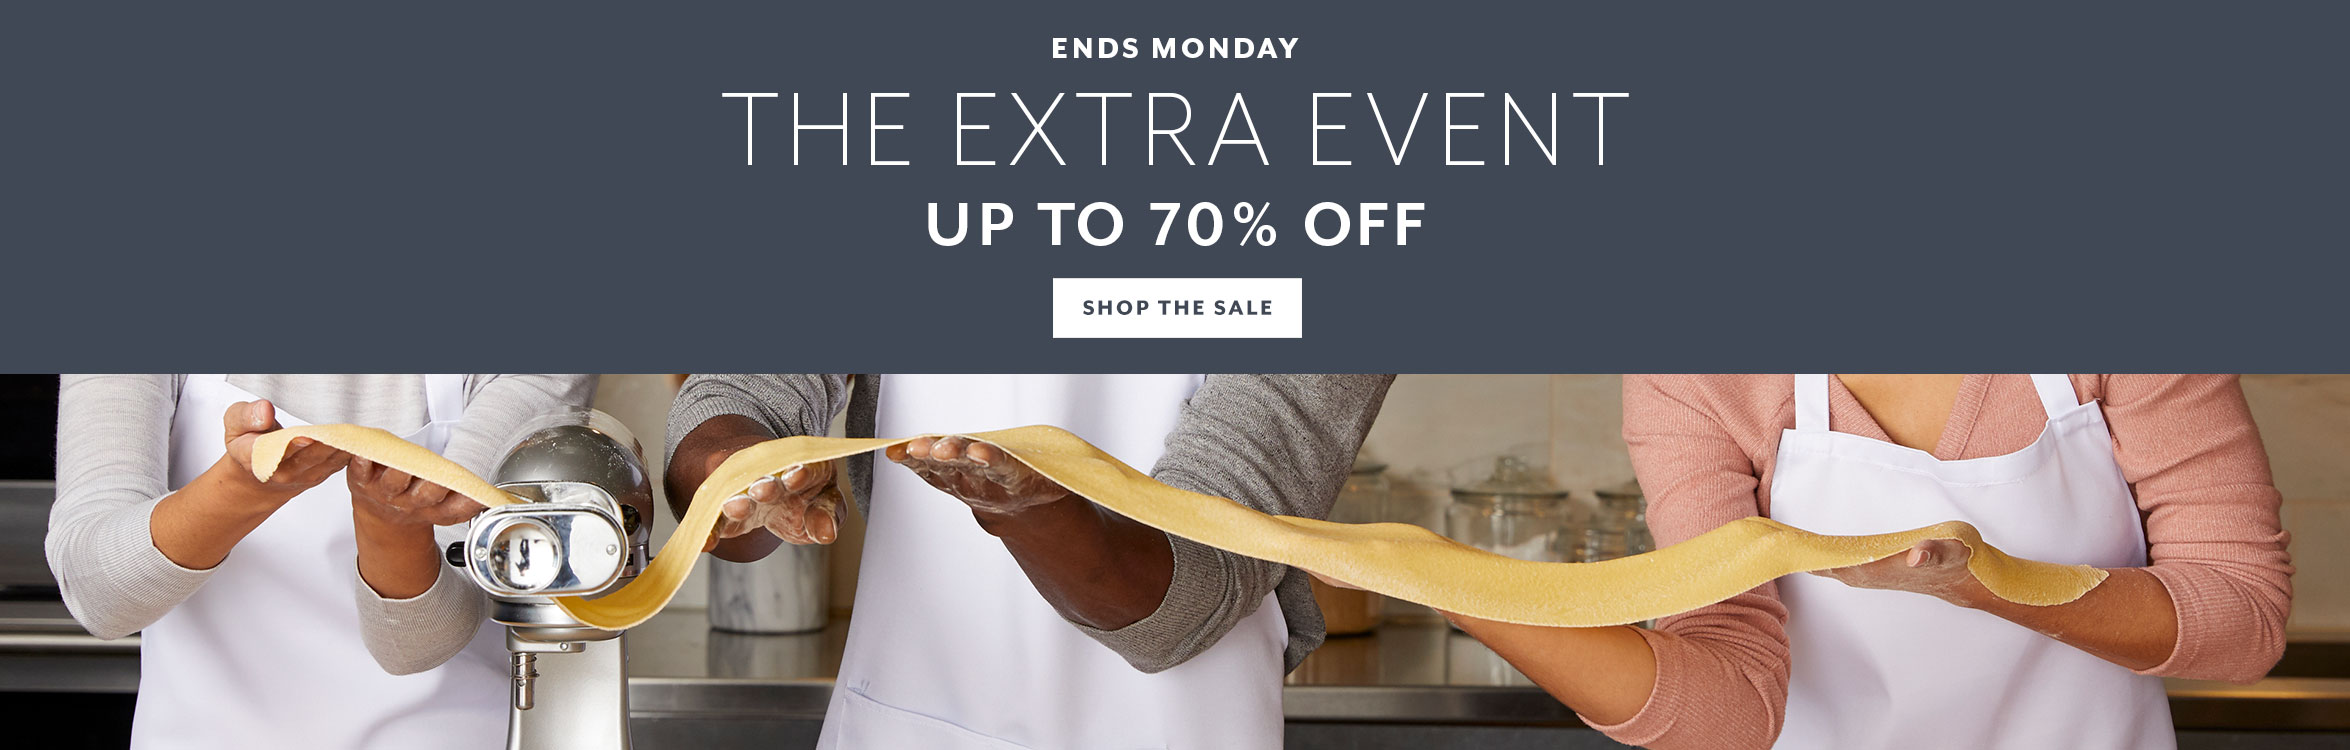 Ends Monday The Extra Event up to 70% OFF, shop the sale